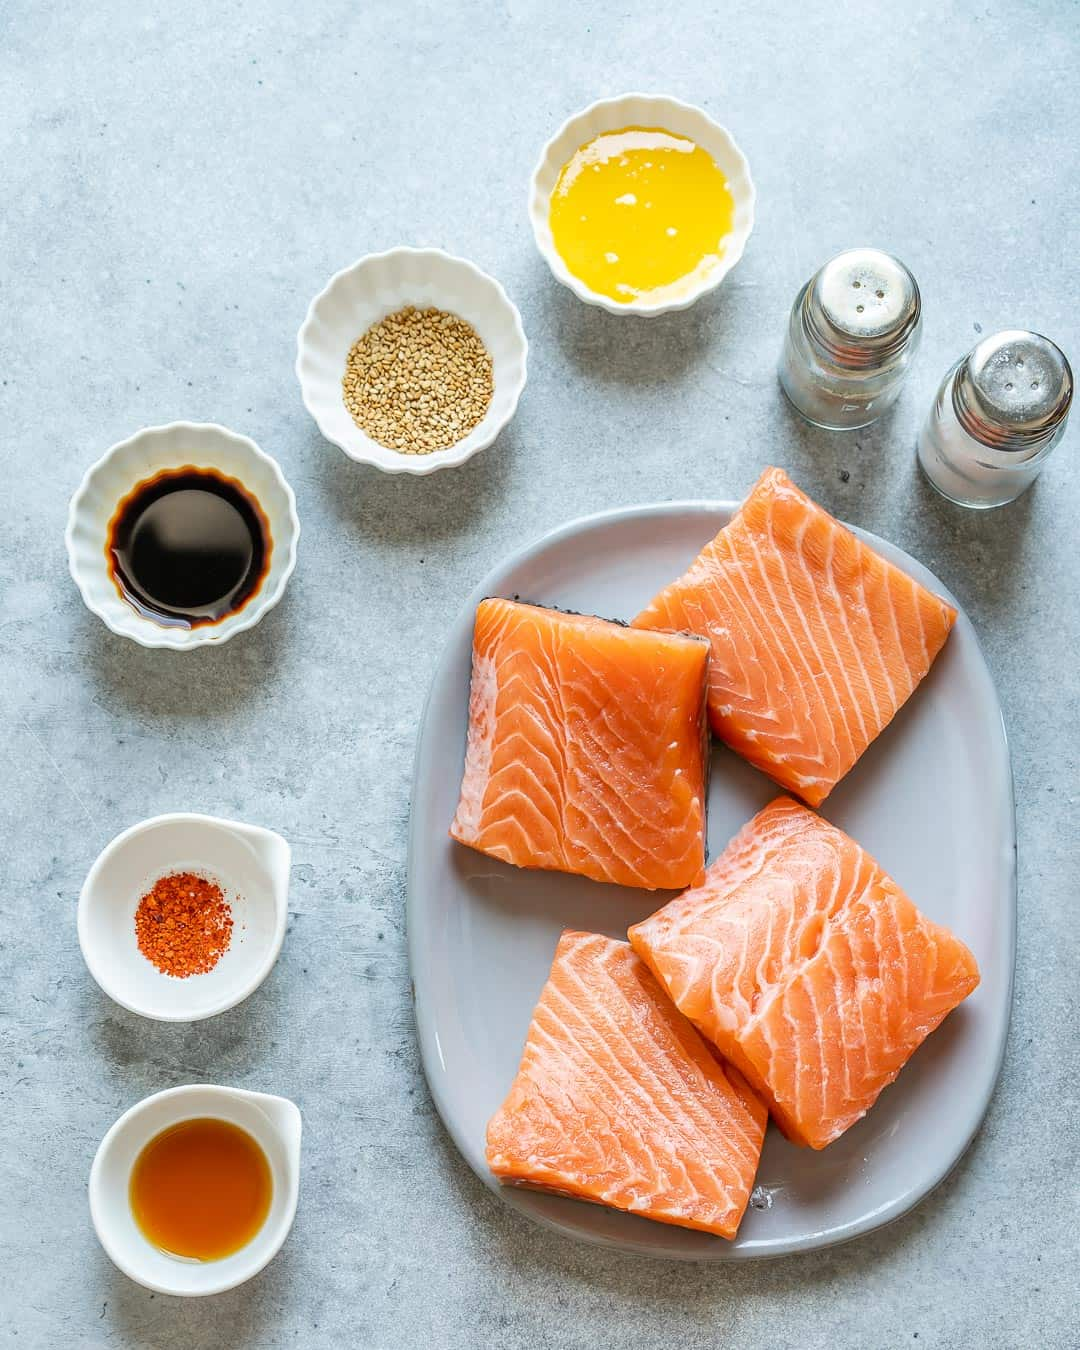 Ingredients for honey glazed air fryer salmon